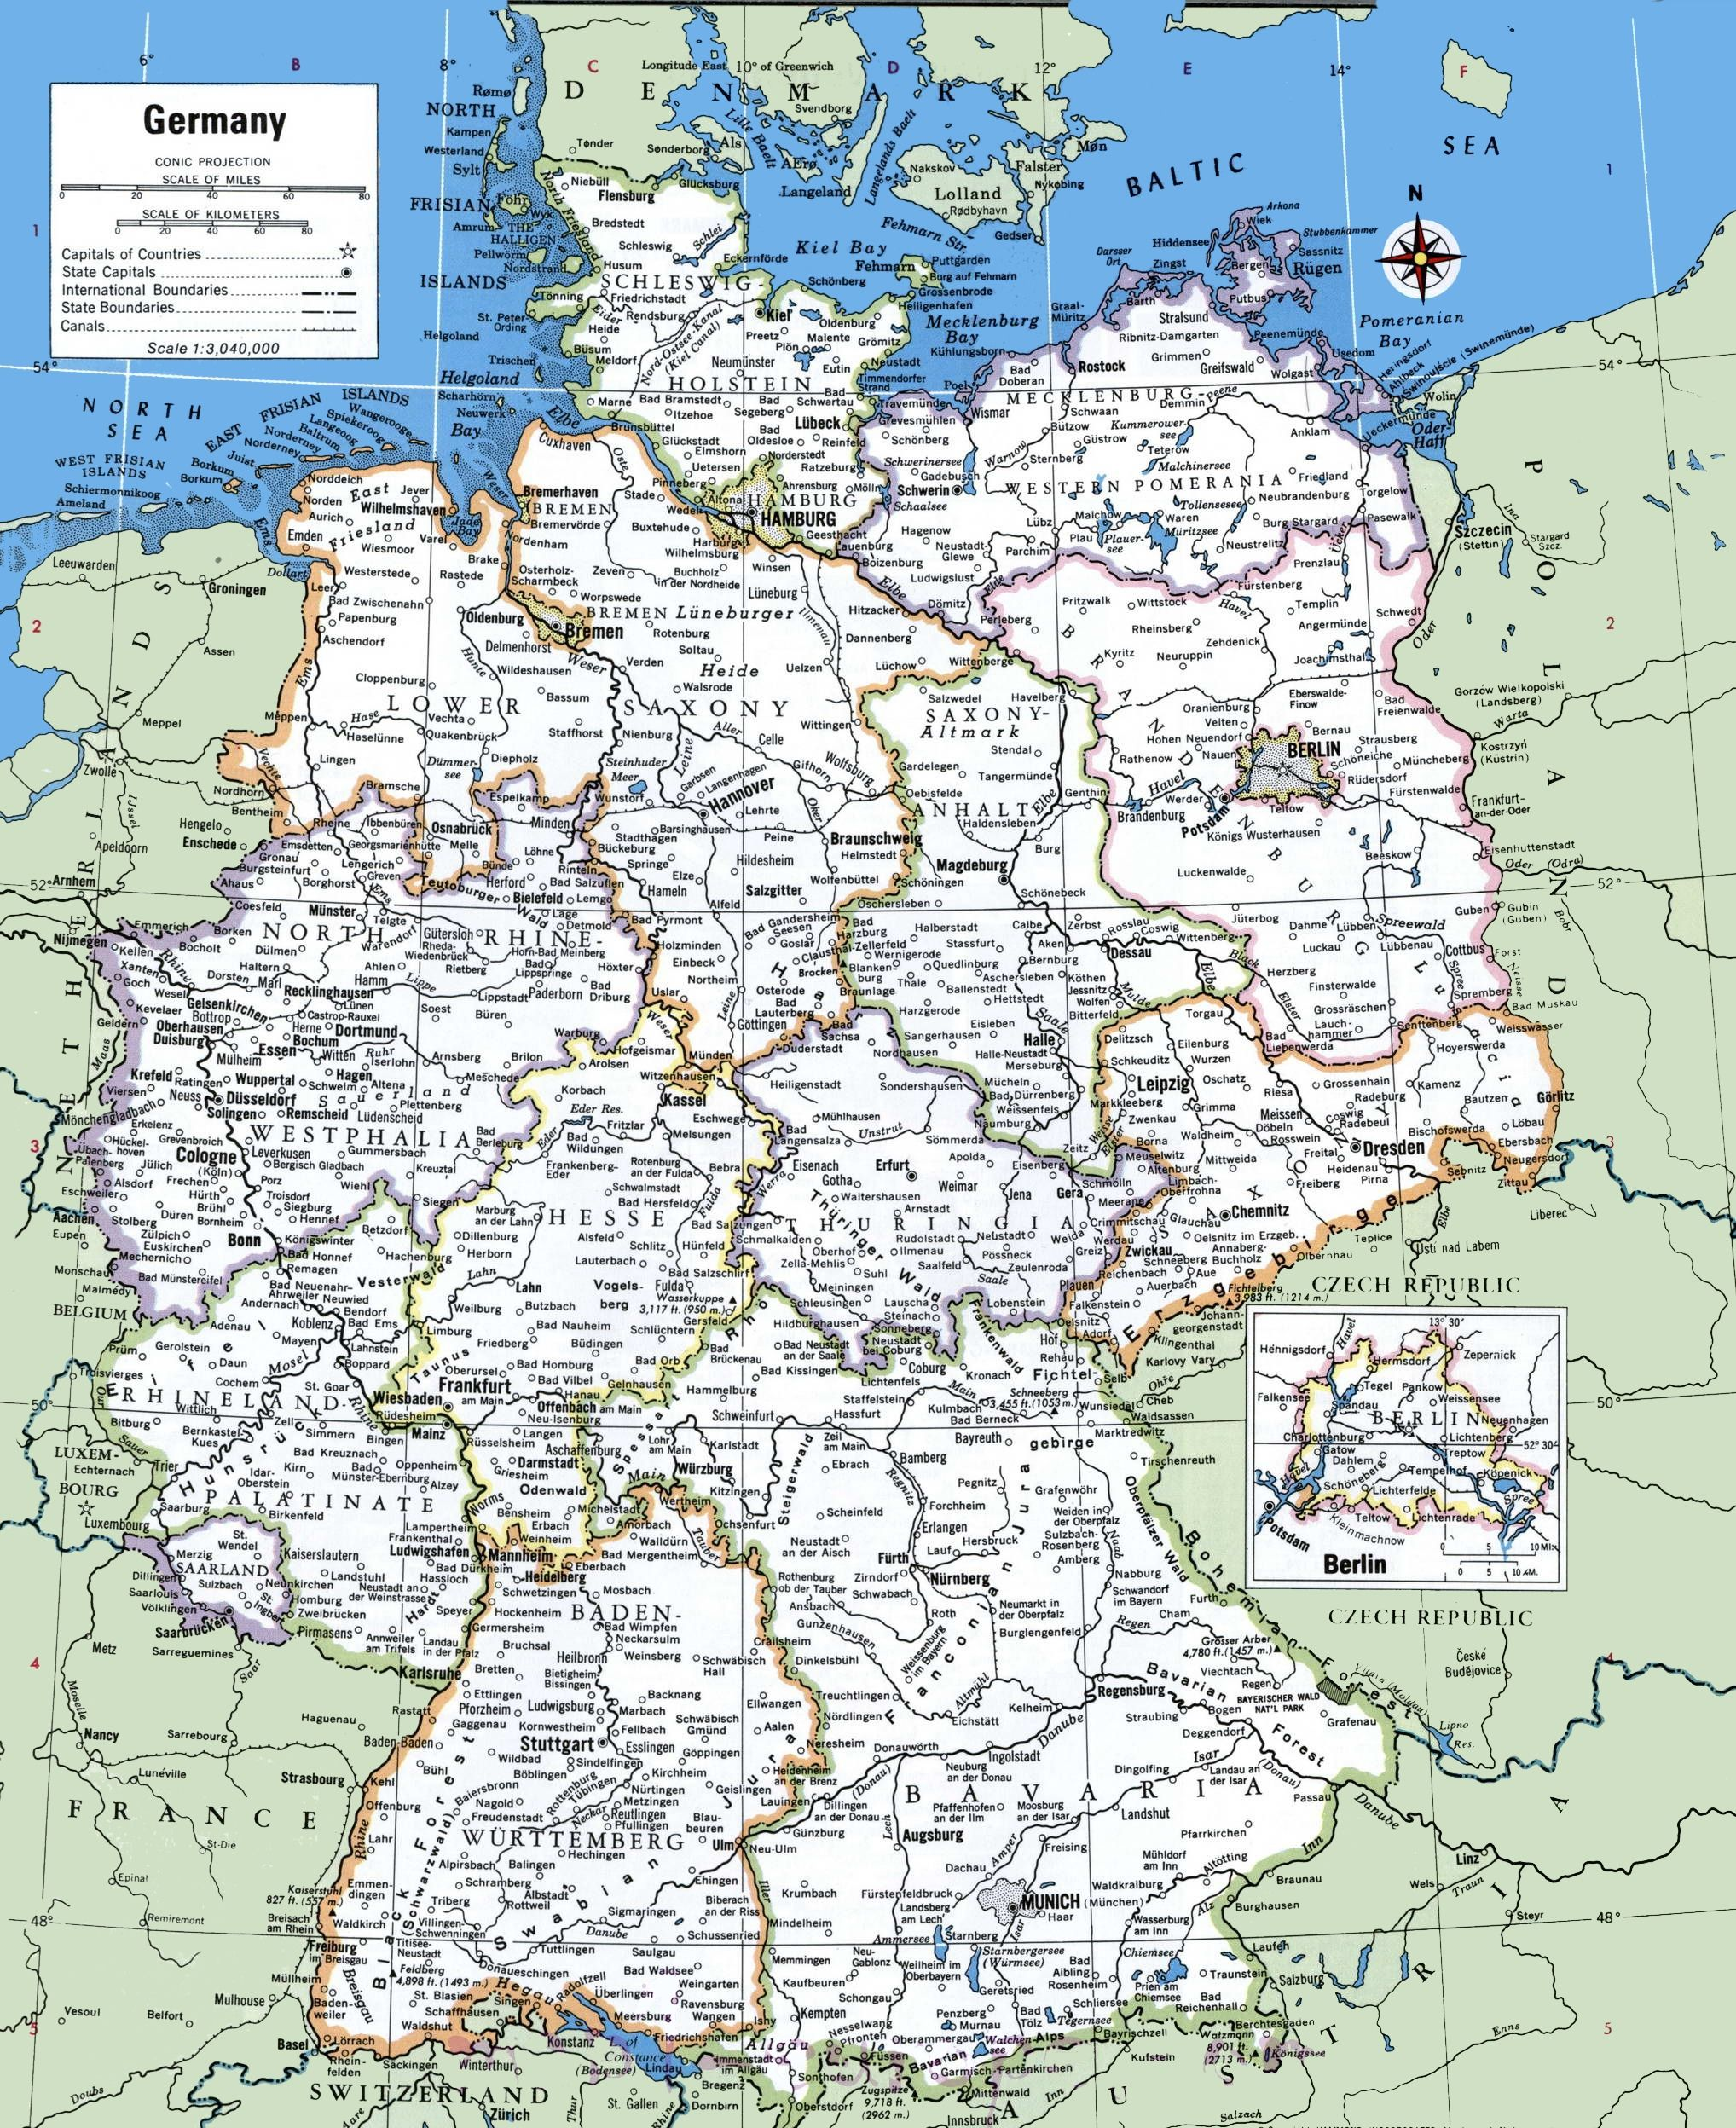 Map Of Germany With Cities And Towns Germany Map Cities In Germany Map Of Switzerland